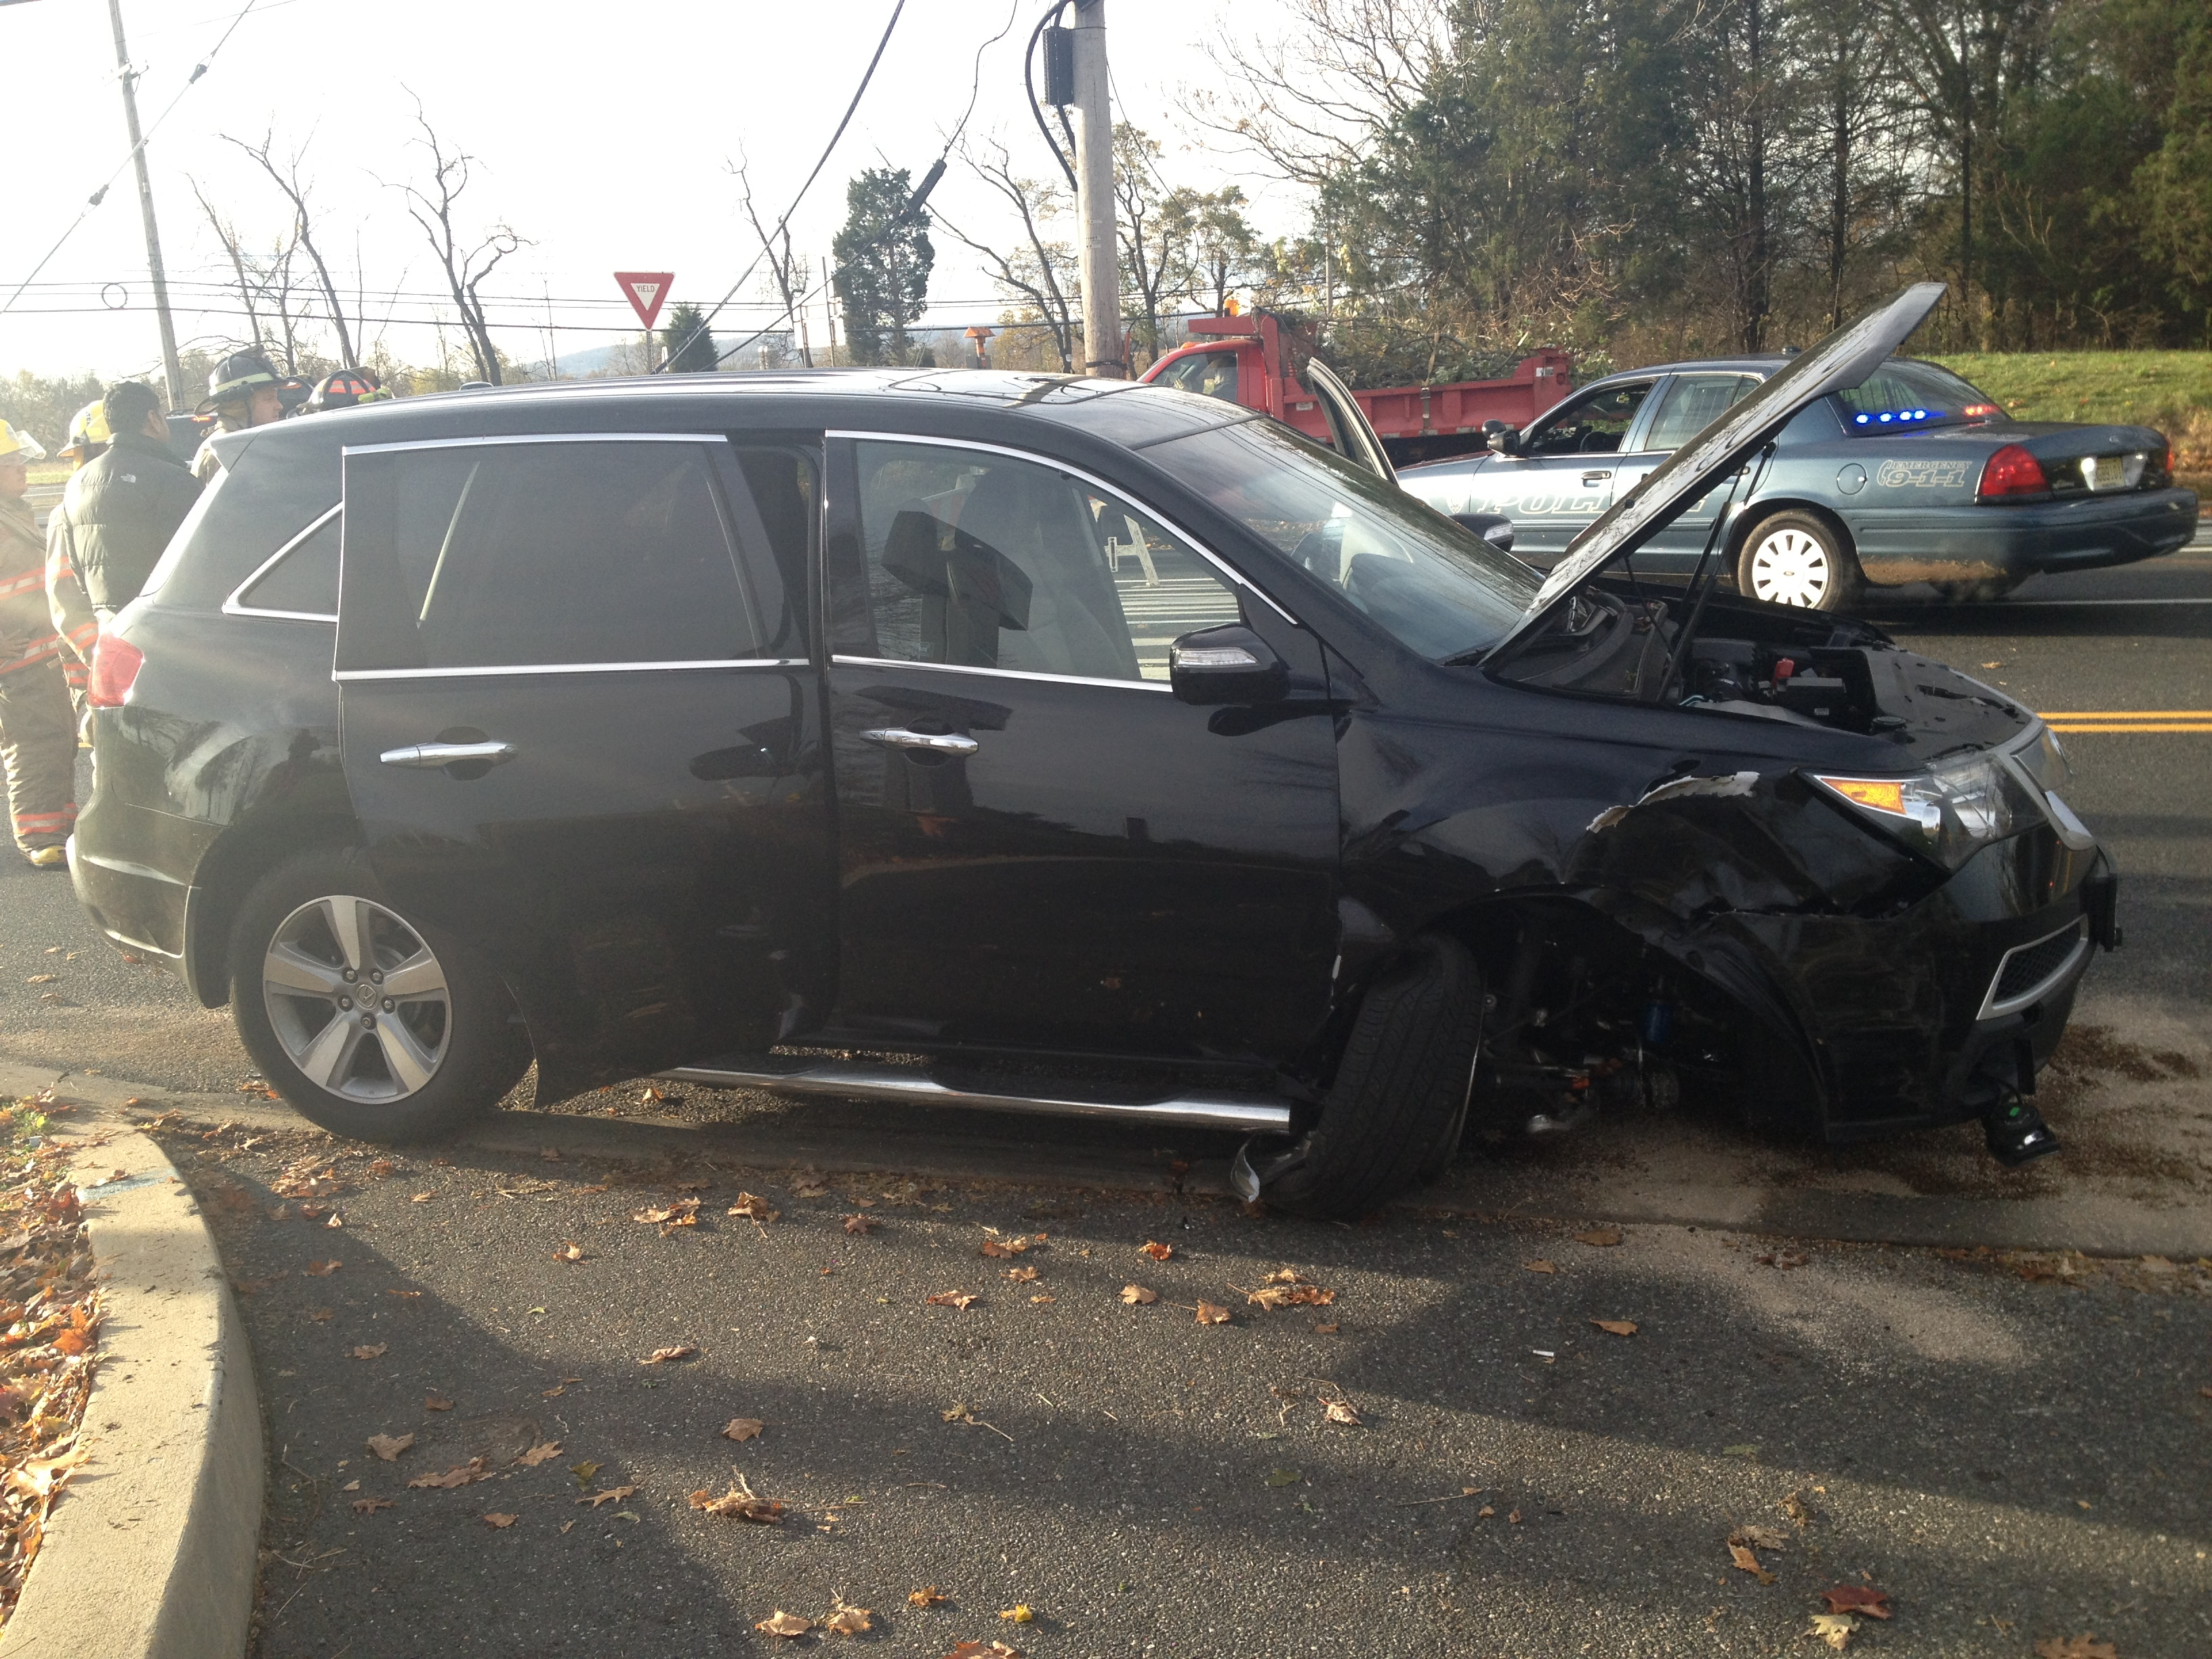 2011 MDX Accident - Is it totaled?-img_0558.jpg